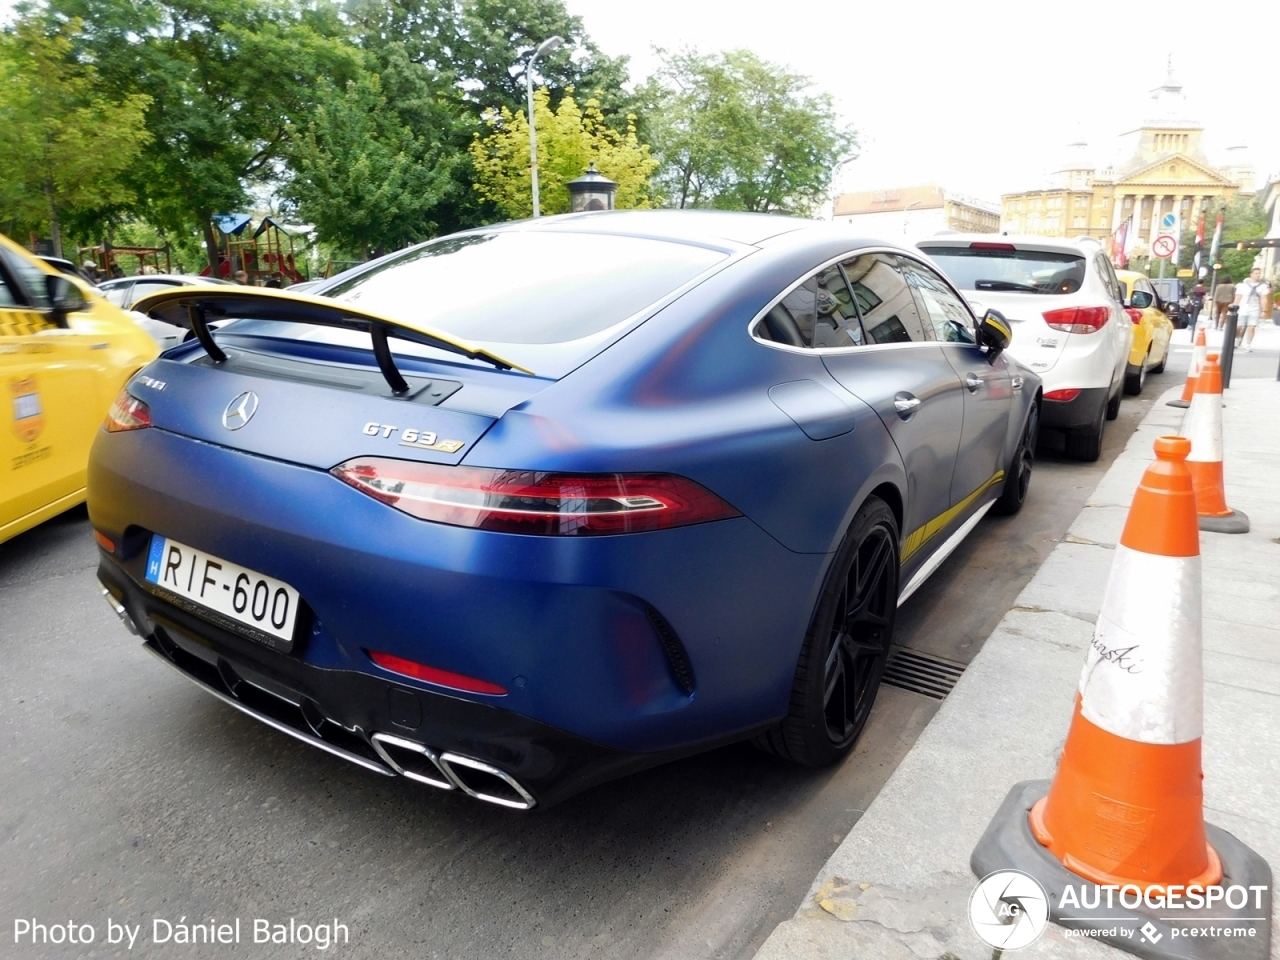 mercedes amg gt 63 s x290 22 may 2019 autogespot. Black Bedroom Furniture Sets. Home Design Ideas